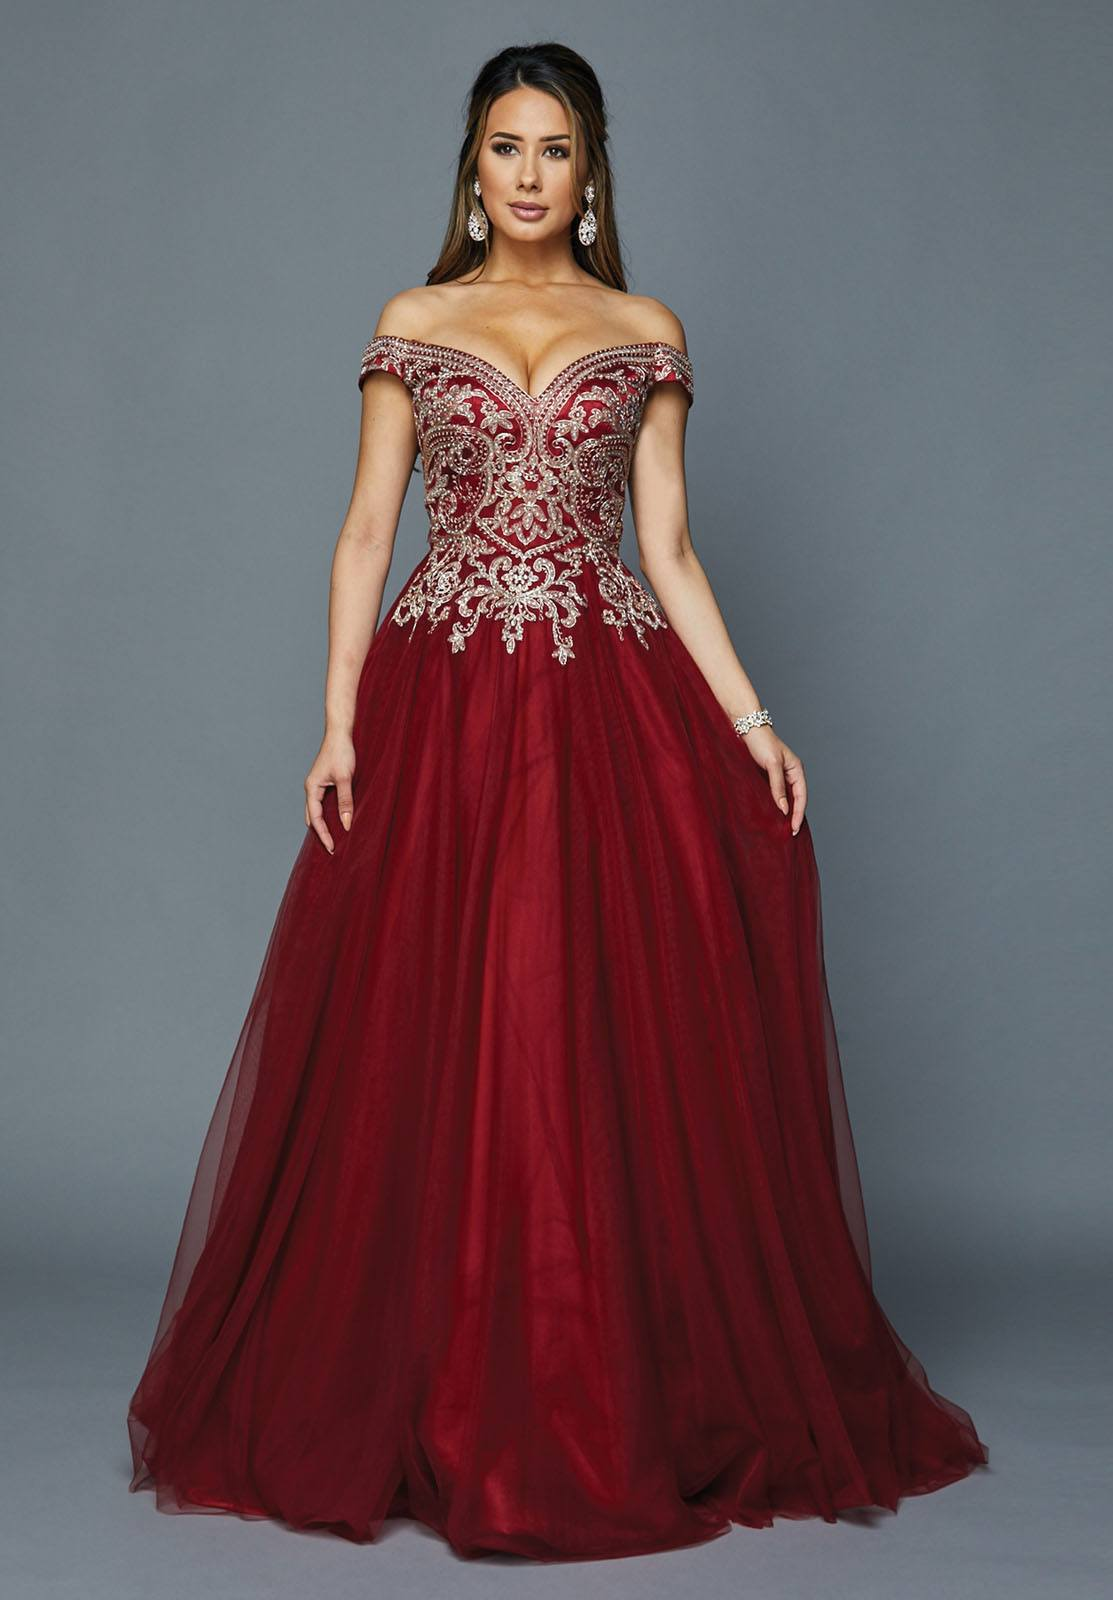 3a8b8906f20 Juliet 685 Off-Shoulder Long Prom Dress with Appliqued Bodice ...